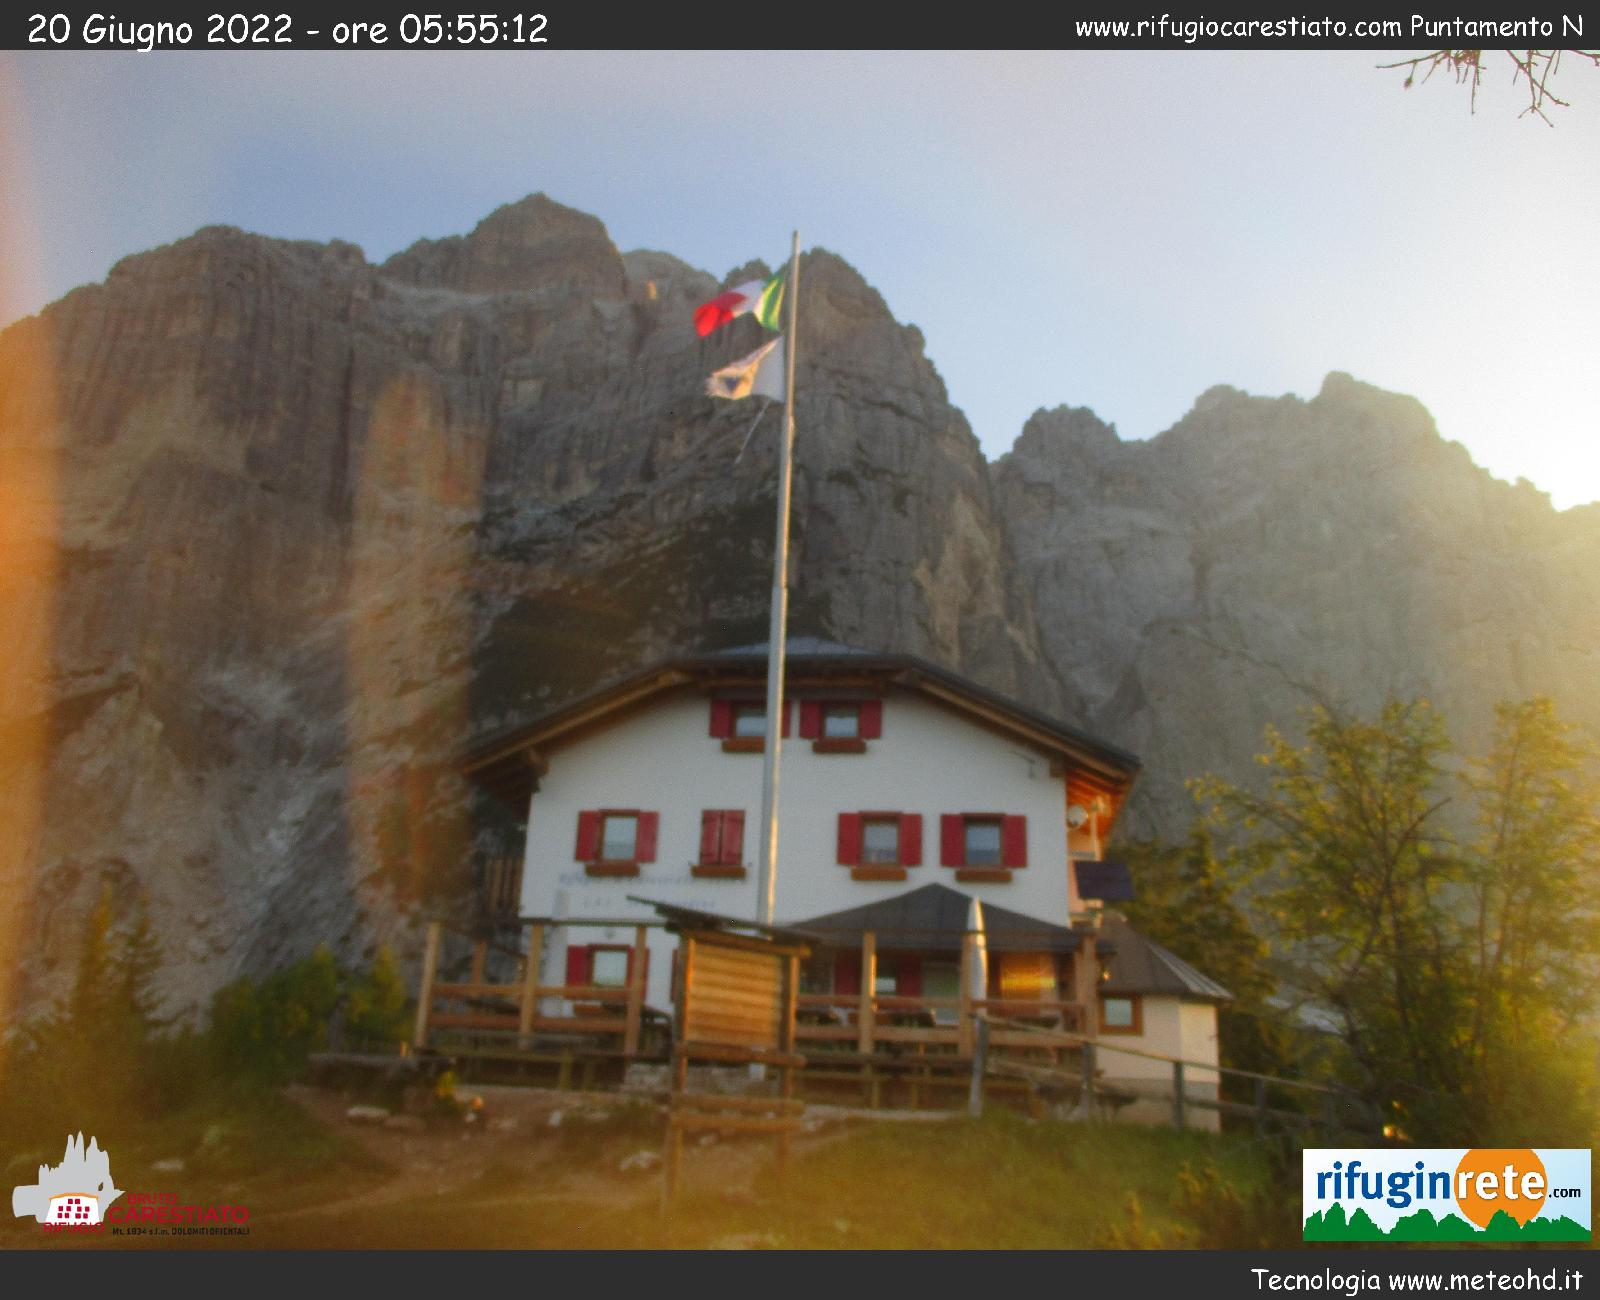 http://www.rifuginrete.com/rifugio/carestiato/webcam/cam.jpg  height=